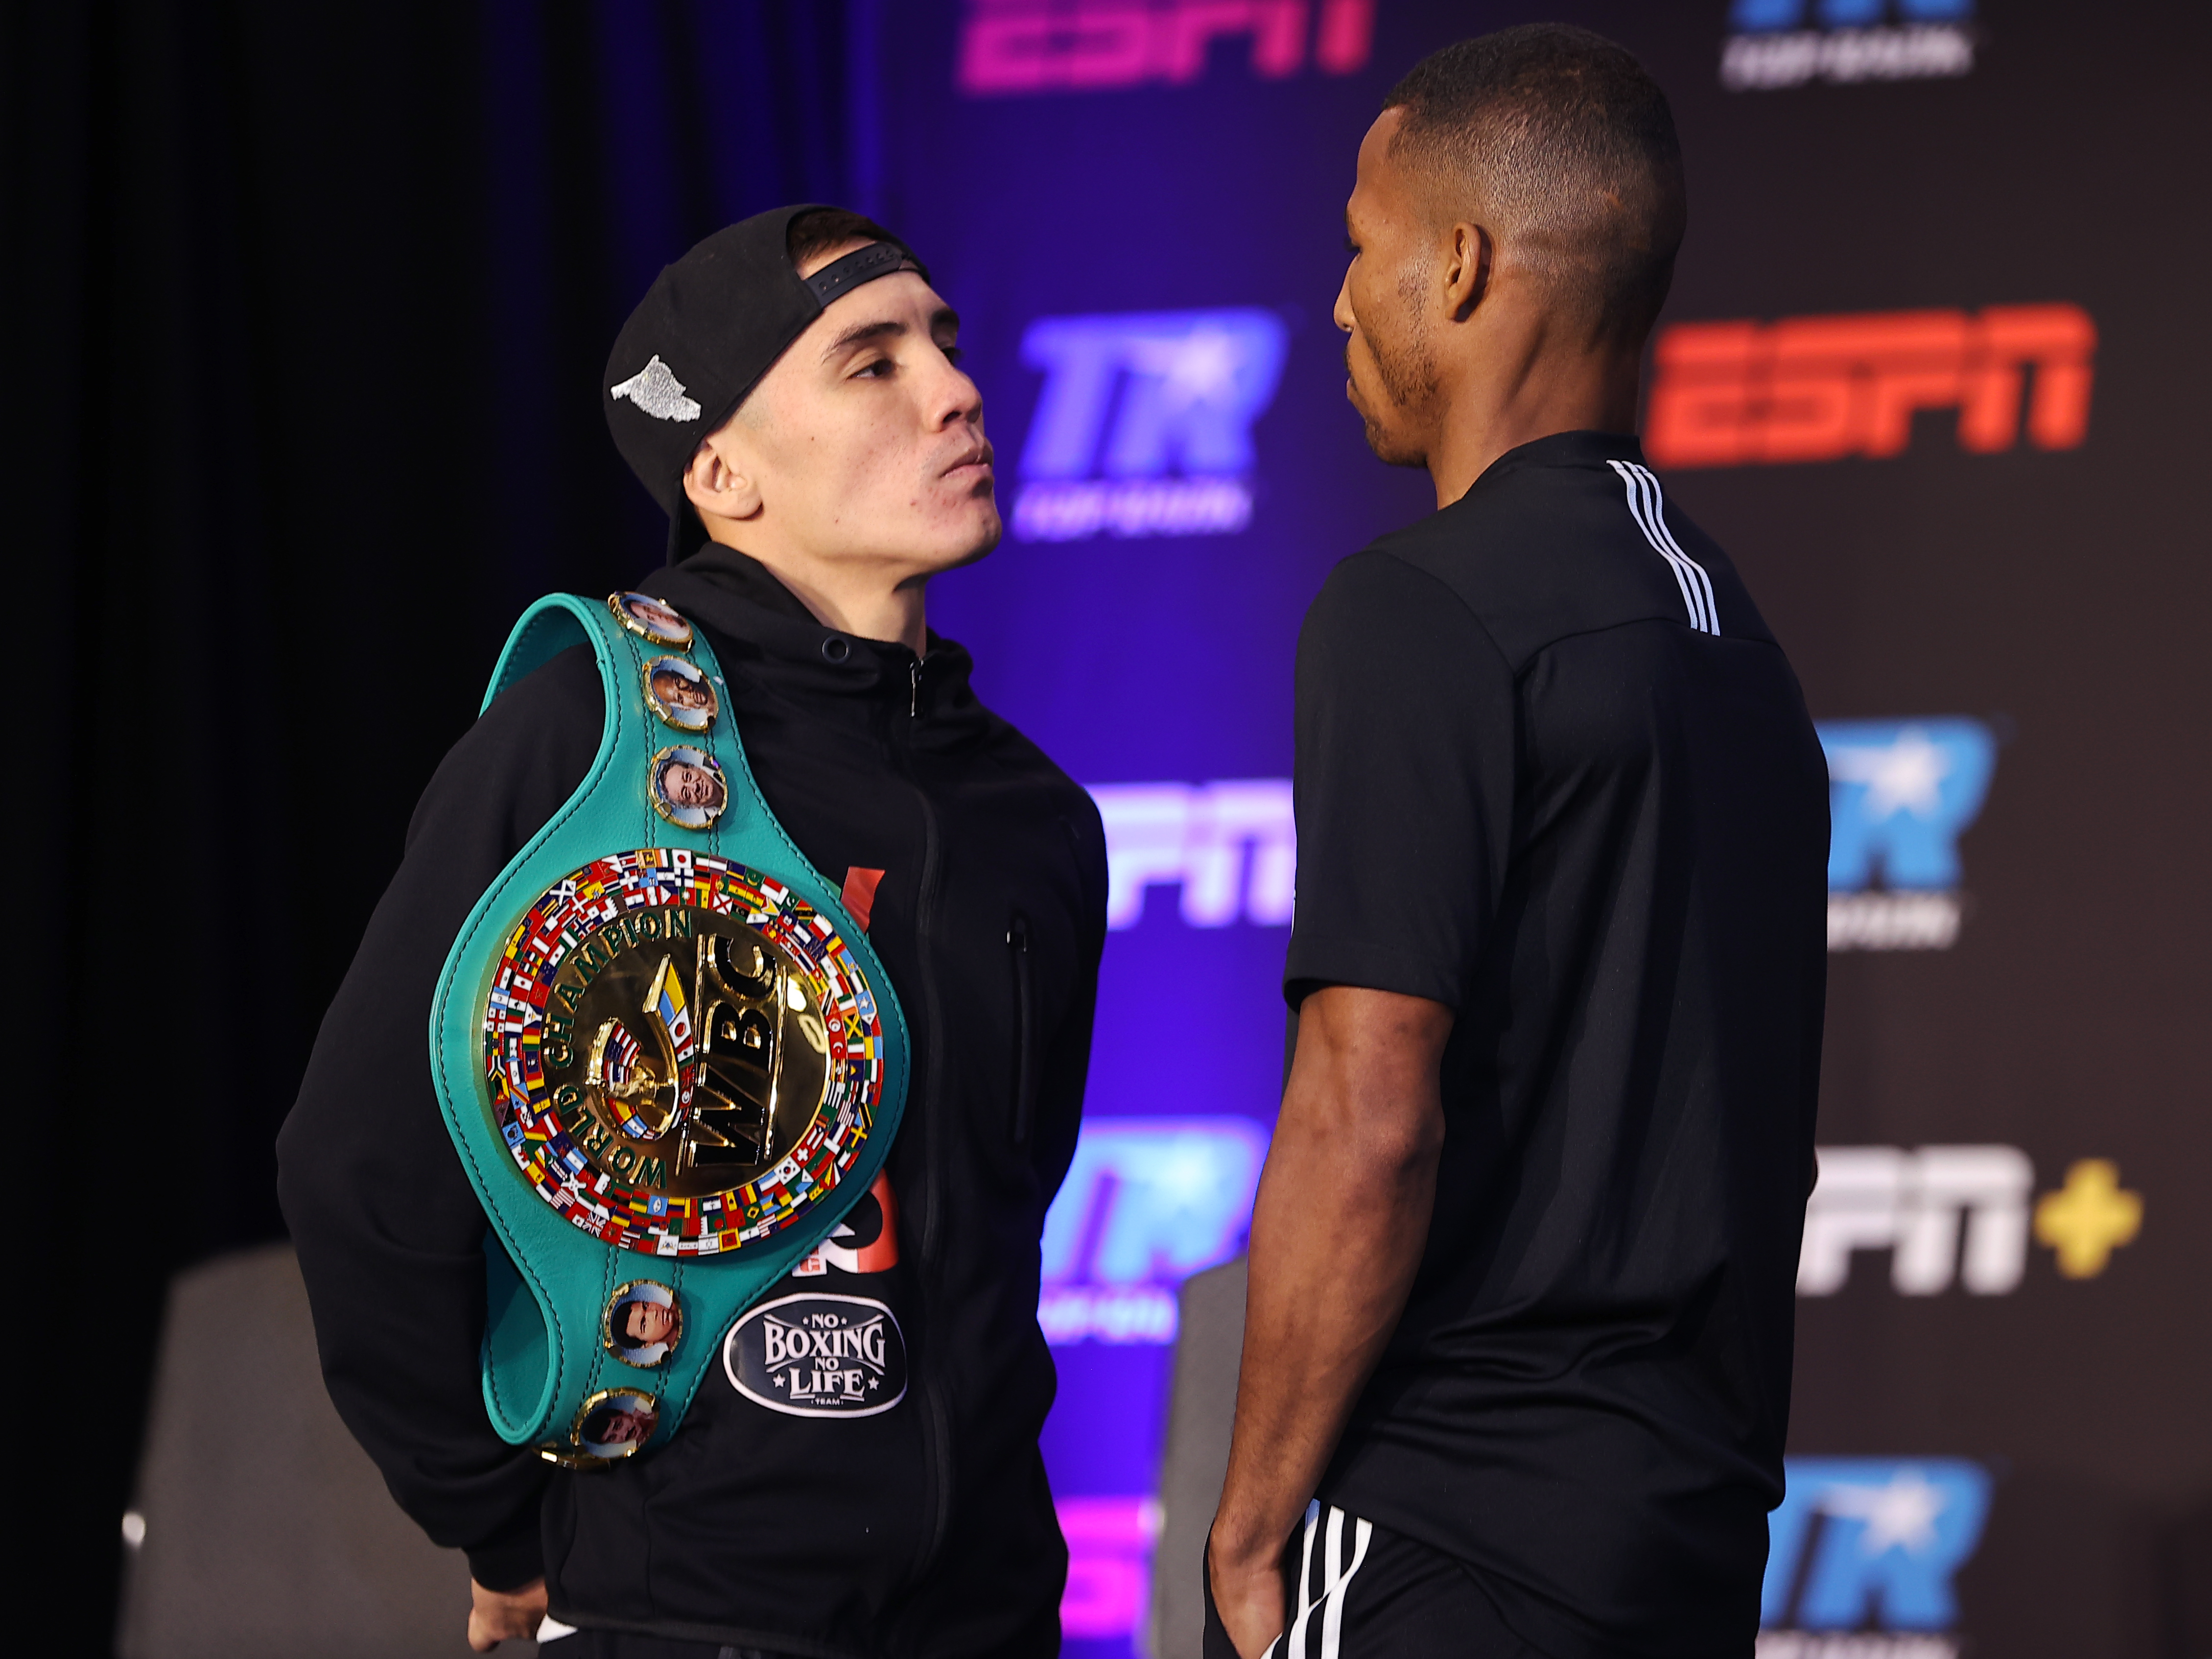 Oscar Valdez (L) and Robson Conceição (R) face-off during their press conference for the WBC super featherweight championship at Casino del Sol on September 08, 2021 in Tucson, Arizona.